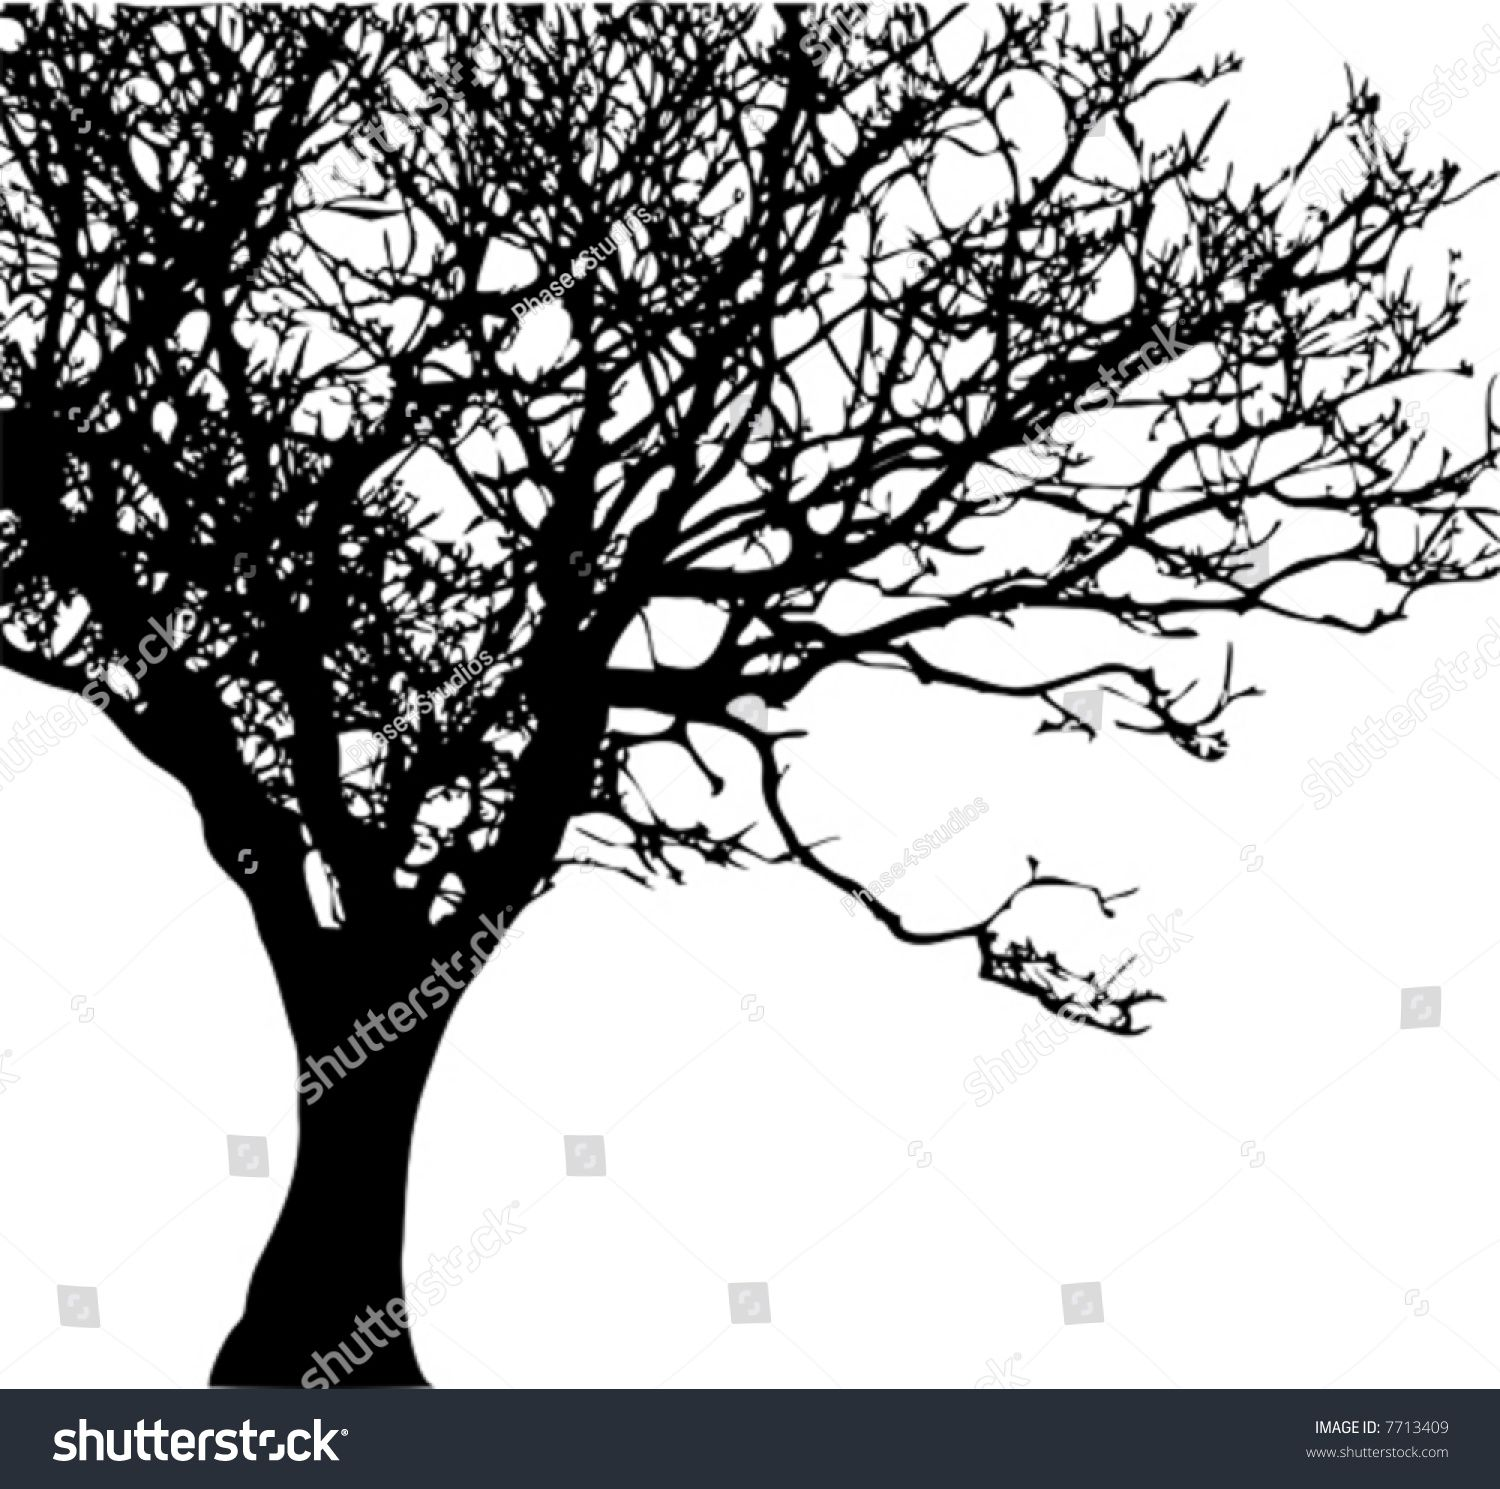 Vector Of A Tree Silhouette Ad Ad Vector Tree Silhouette Tree Silhouette Vector Trees Vector Free